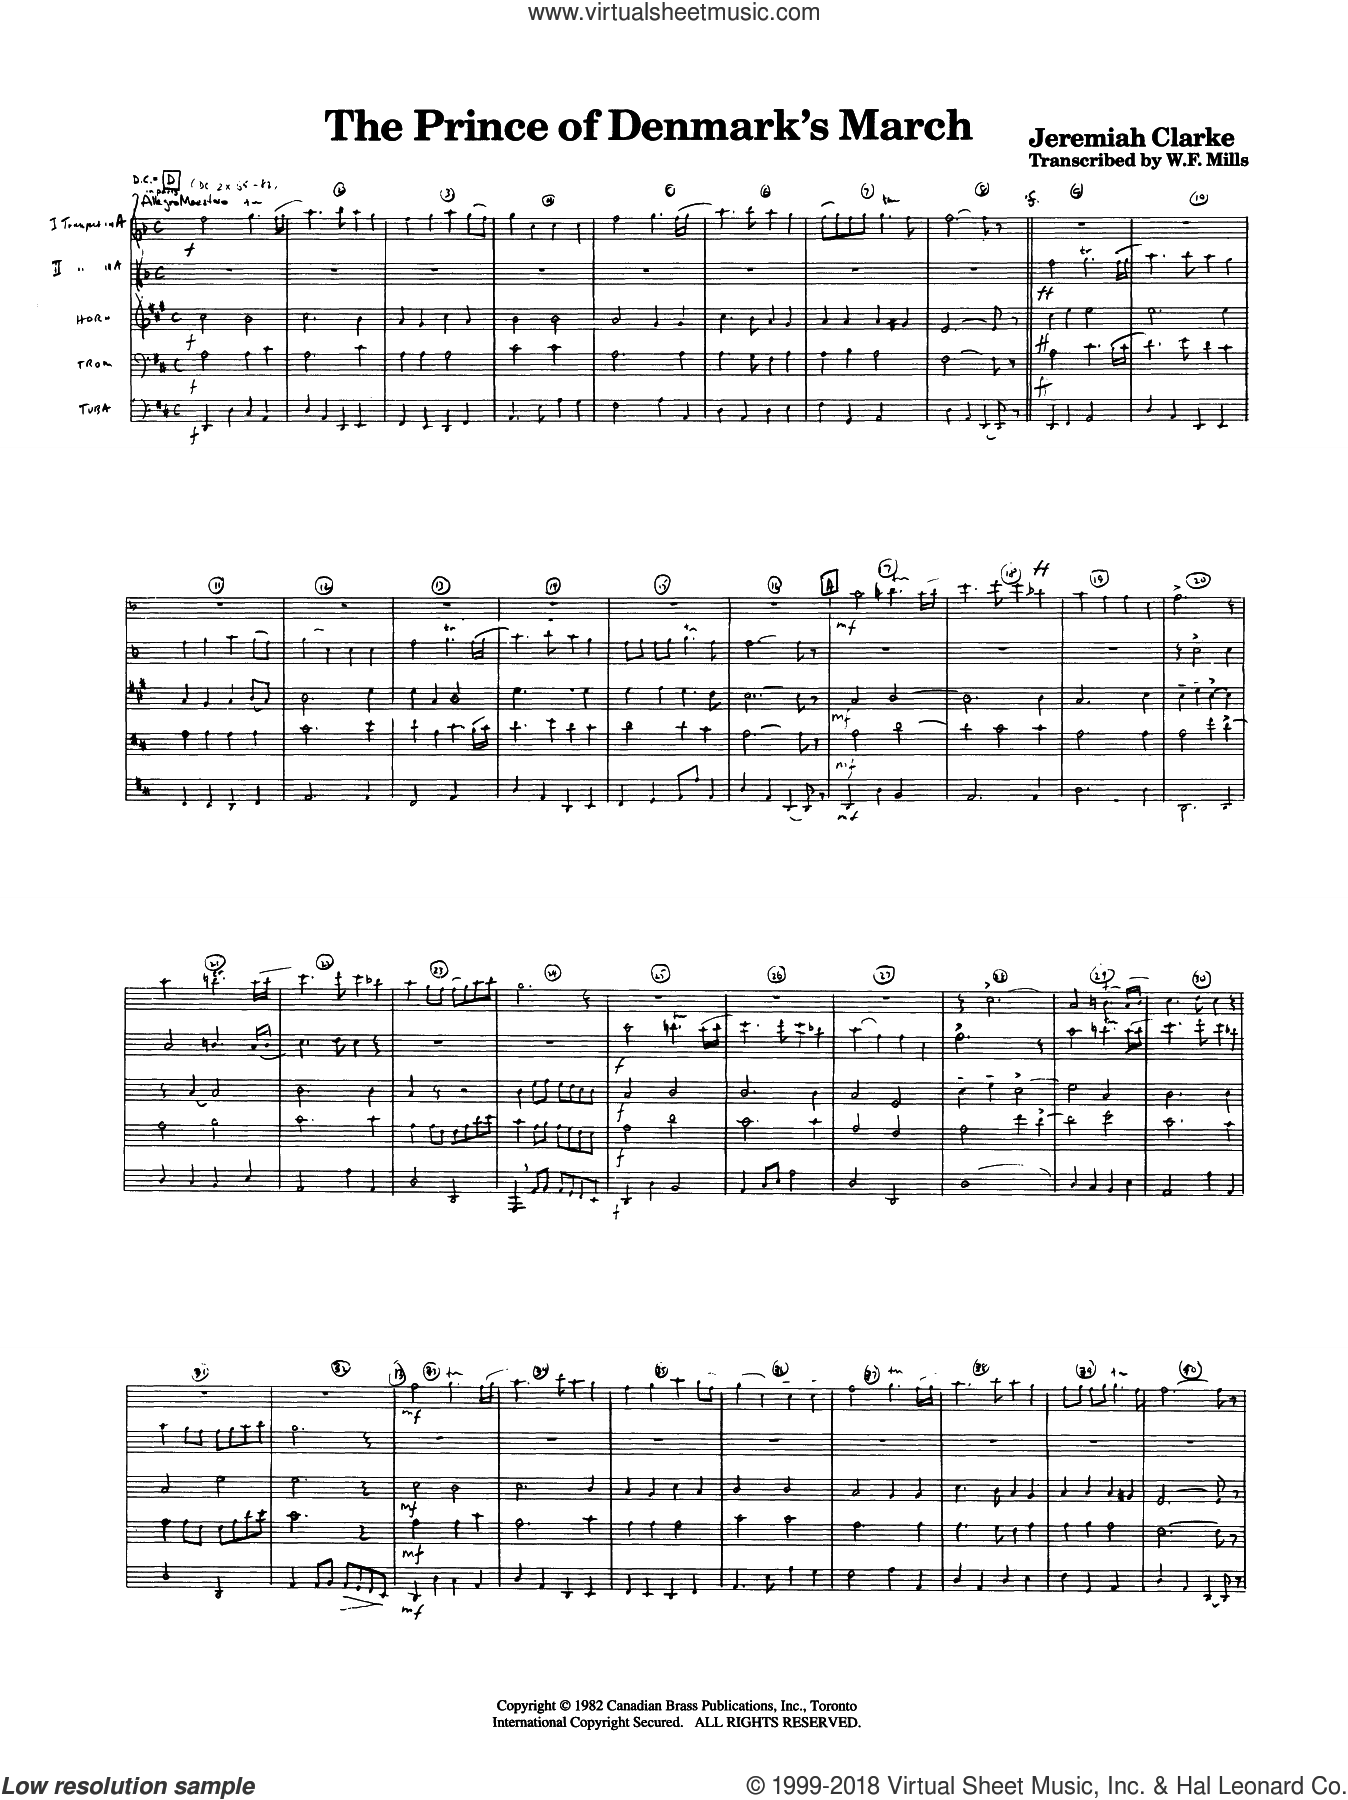 The Prince of Denmark's March (COMPLETE) sheet music for brass quintet by Jeremiah Clarke and W.F. Mills, classical score, intermediate skill level